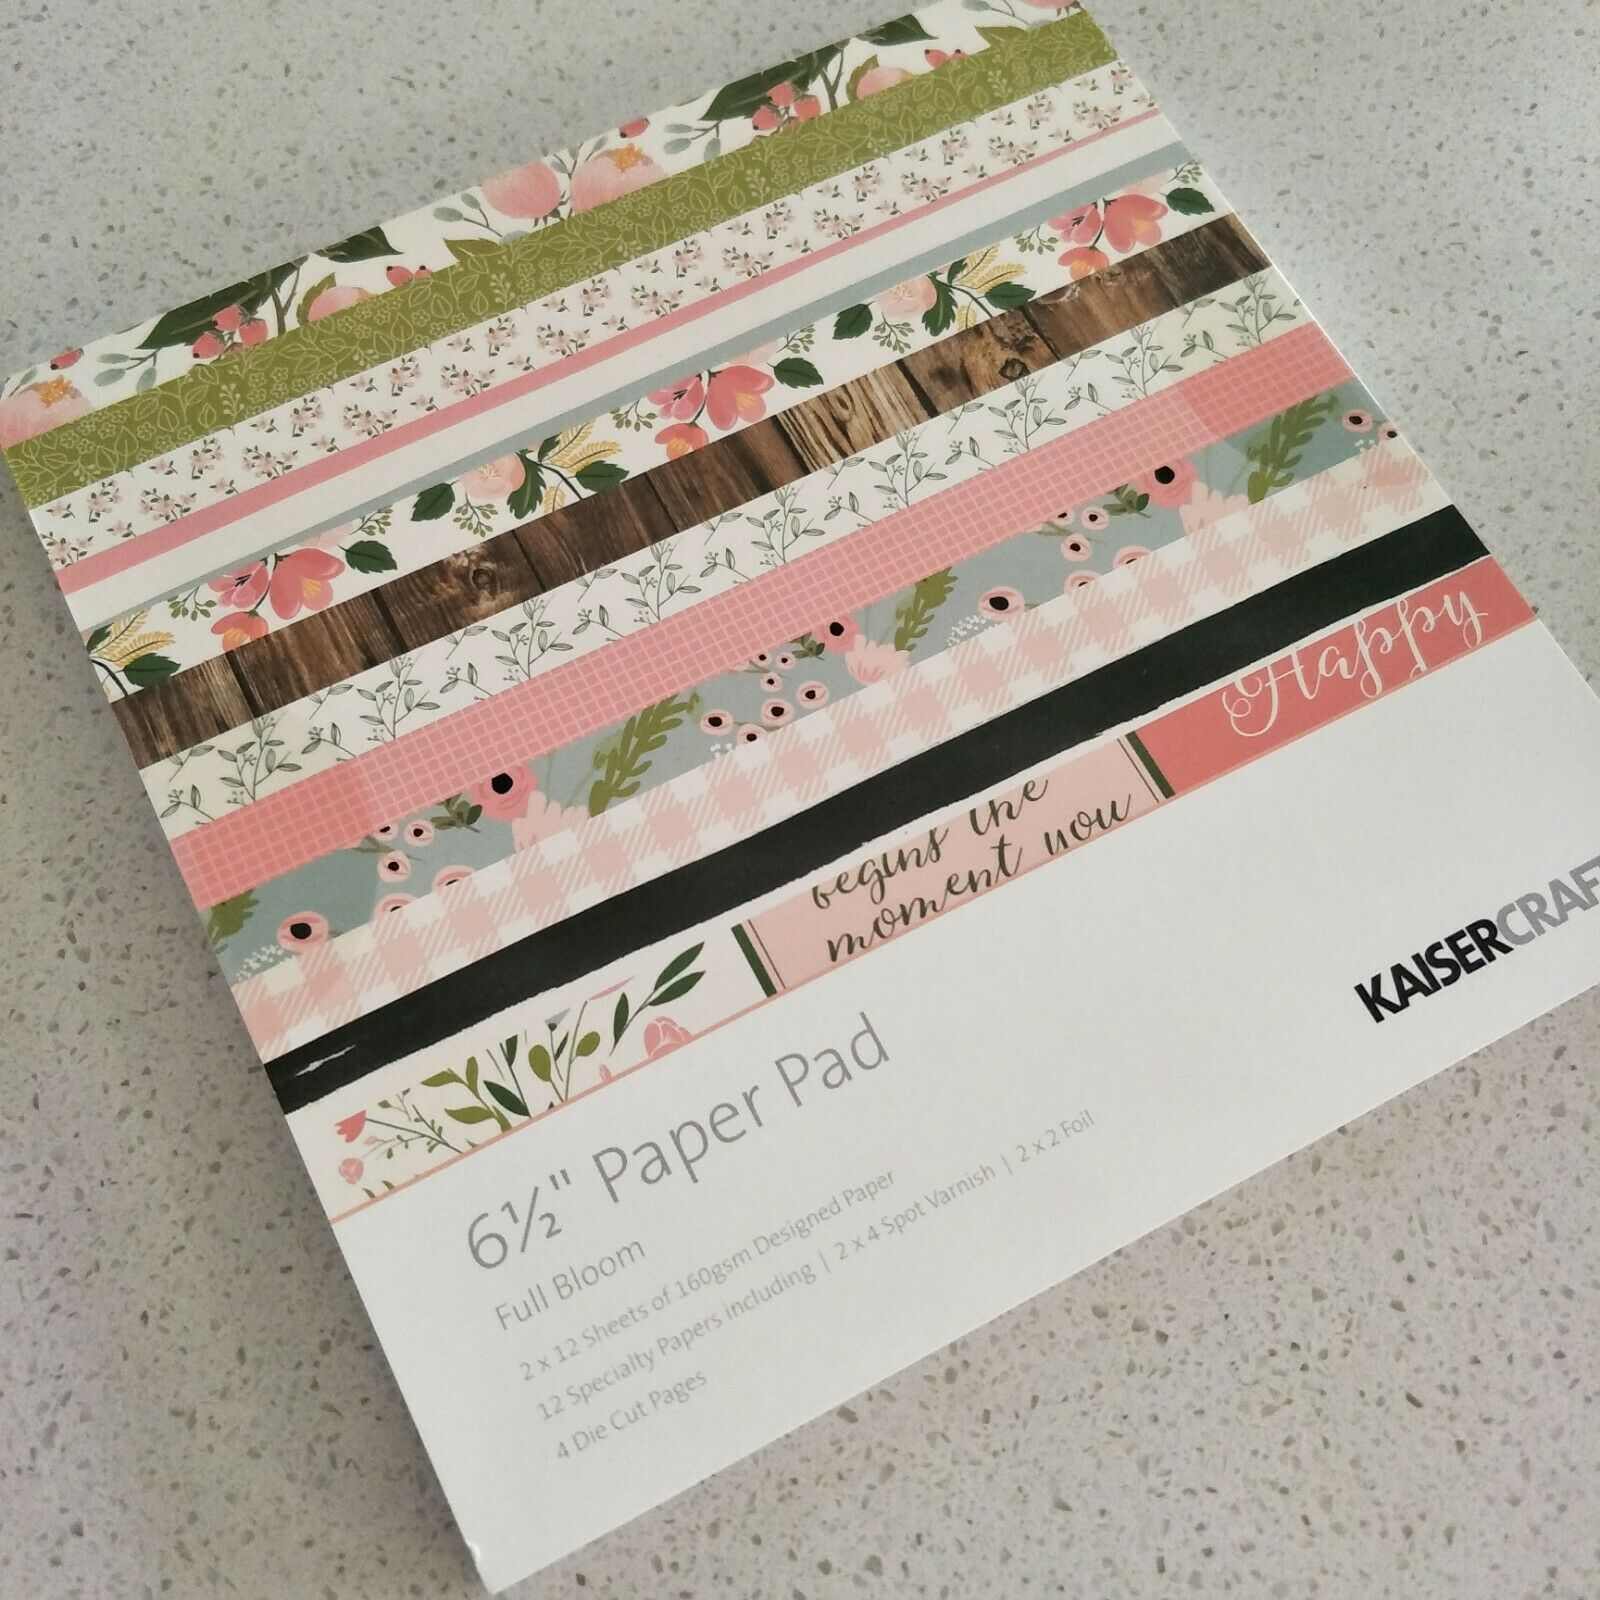 2016 - 2019 Discounted KAISERCRAFT paper pads 6.5 * 6.5 inch 20 options - Full Bloom